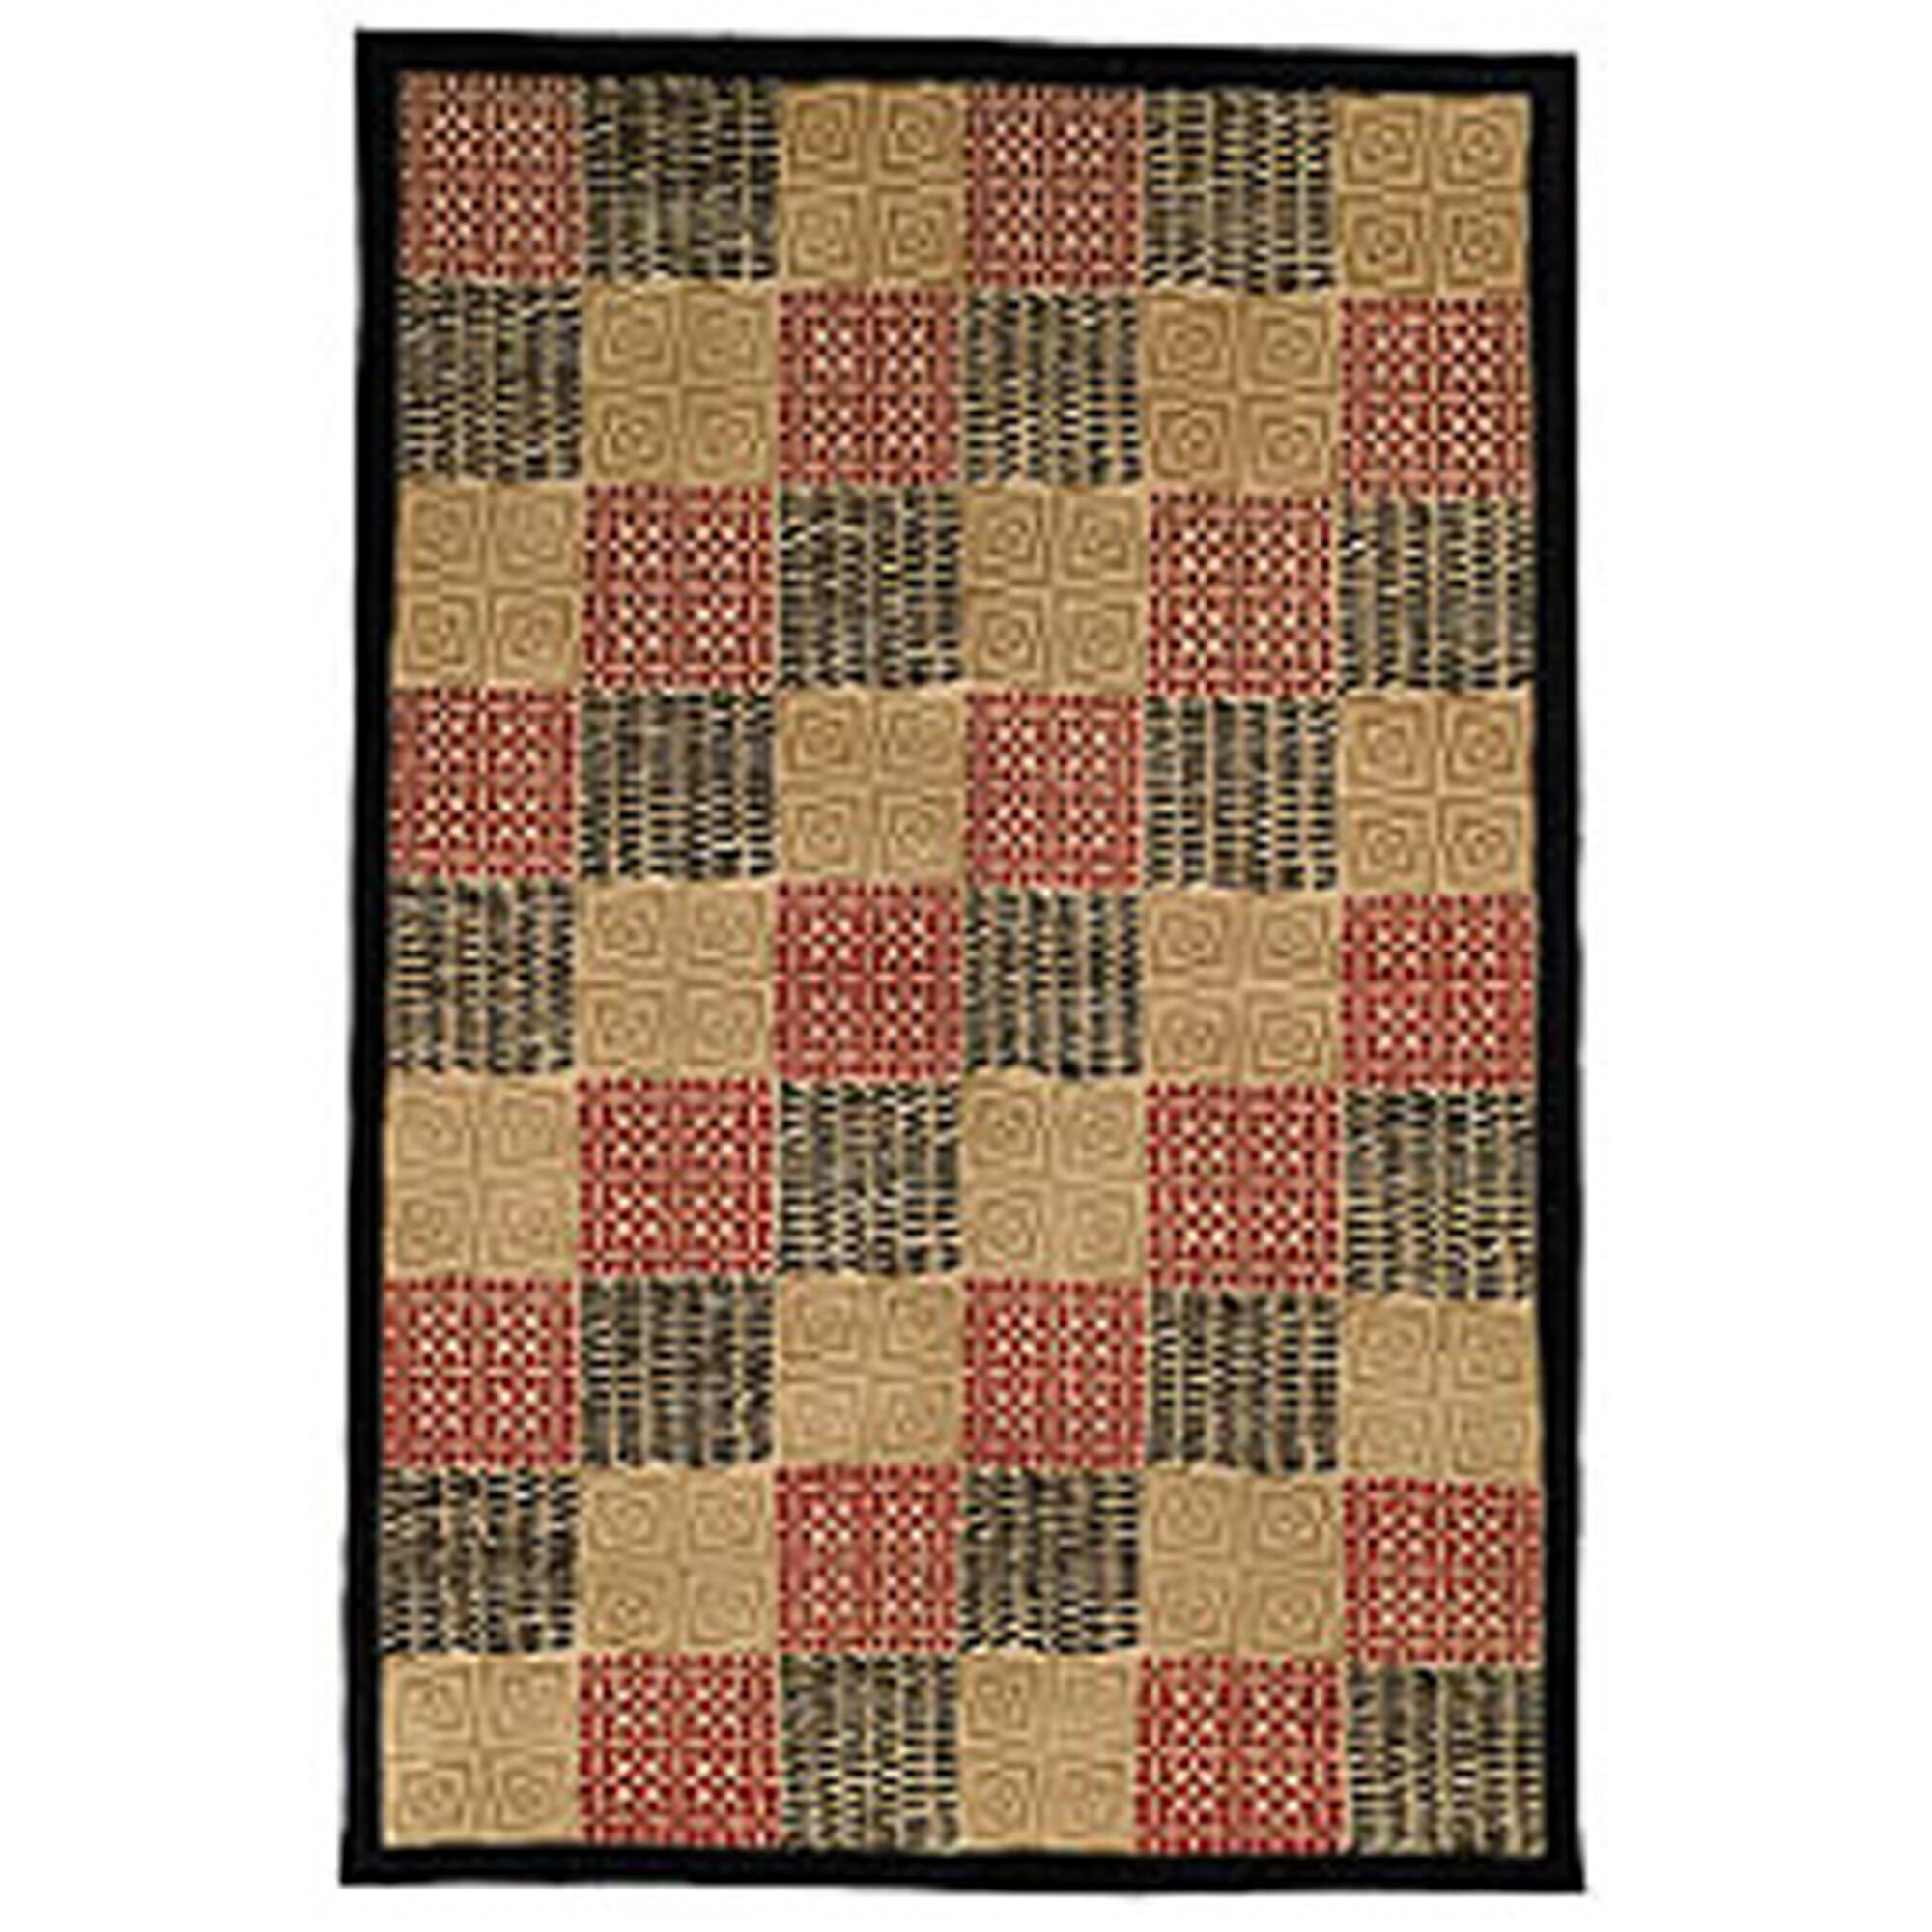 Youmans Tibetan Hand Knotted Silk/Wool Black/Rust Area Rug Rug Size: Rectangle 5' x 7'6